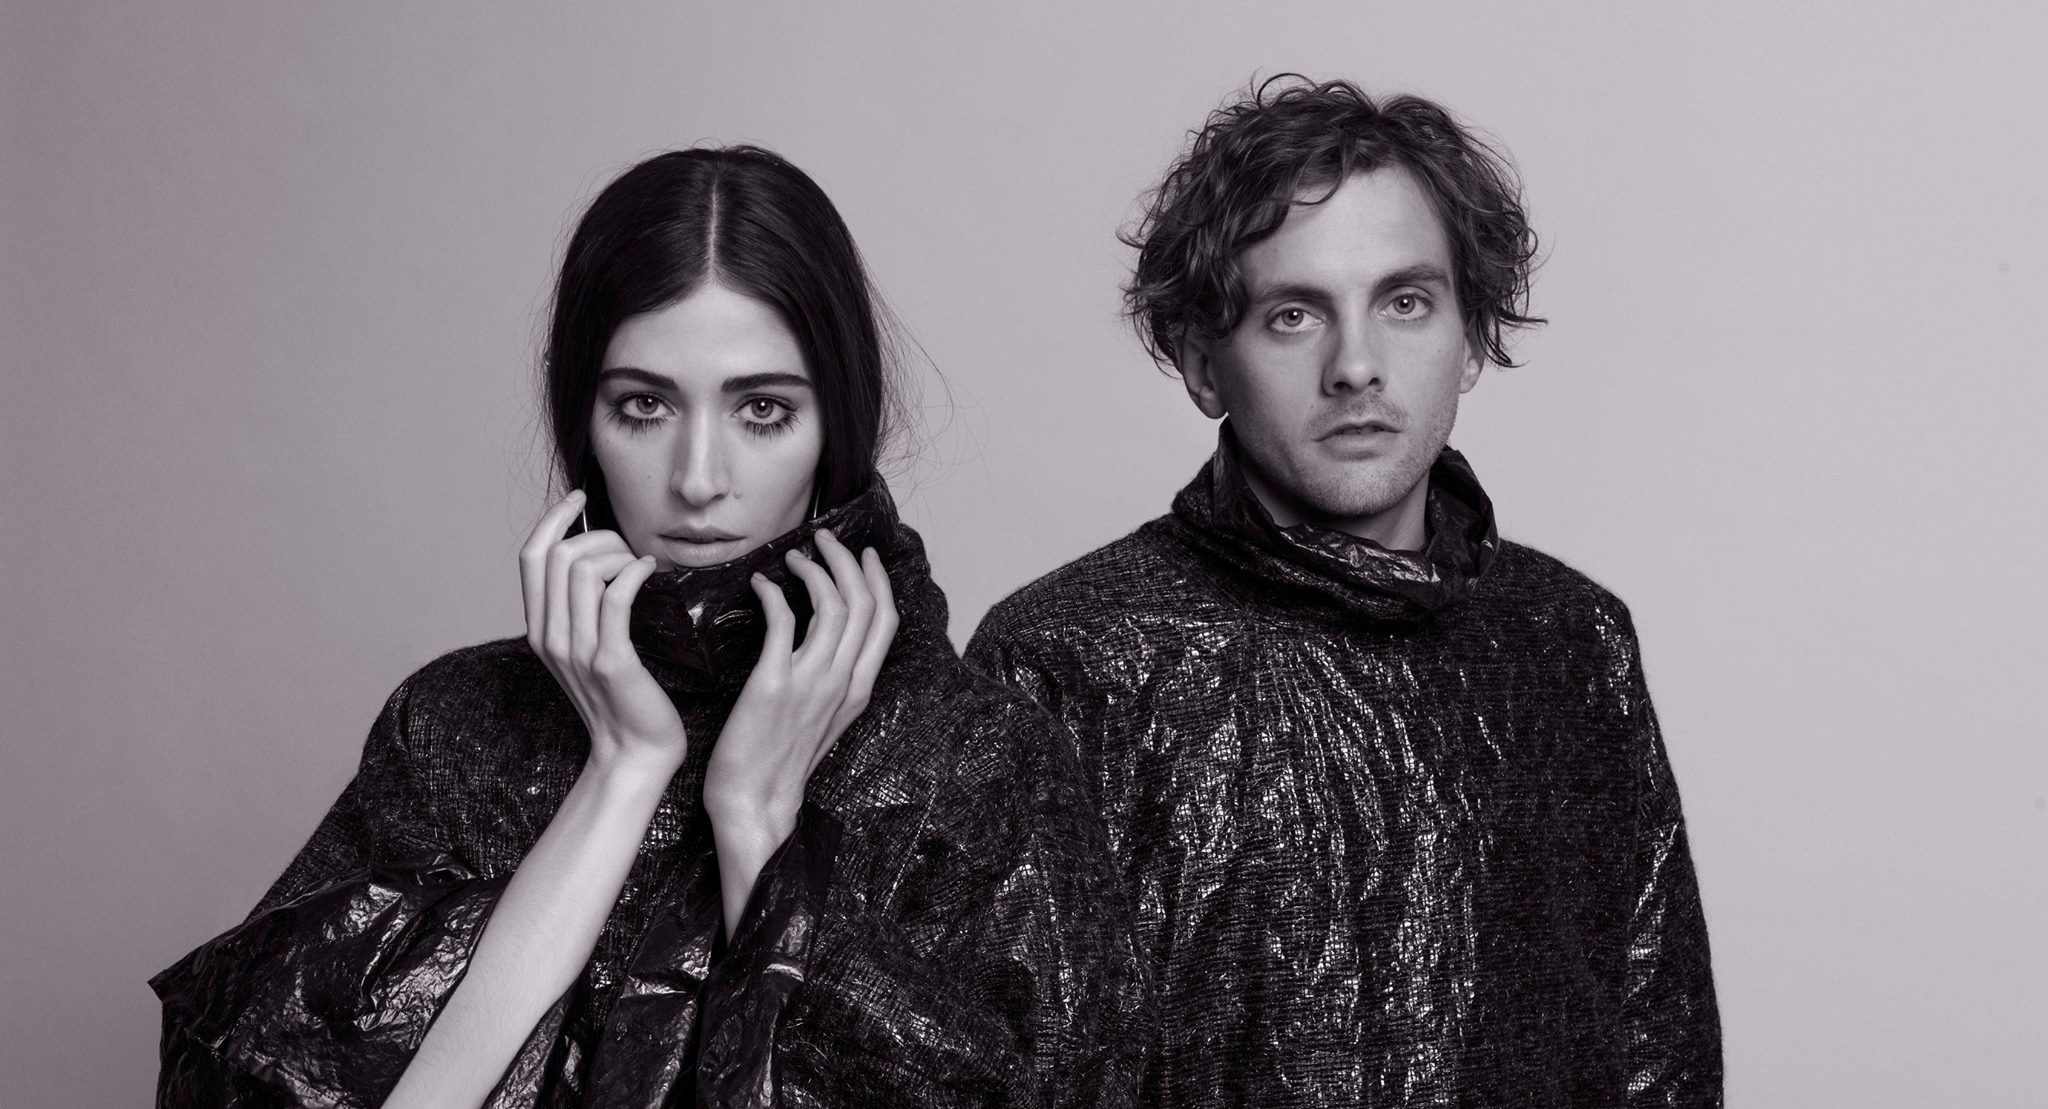 Interview with Chairlift members Caroline Polachek and Patrick Wimberly,